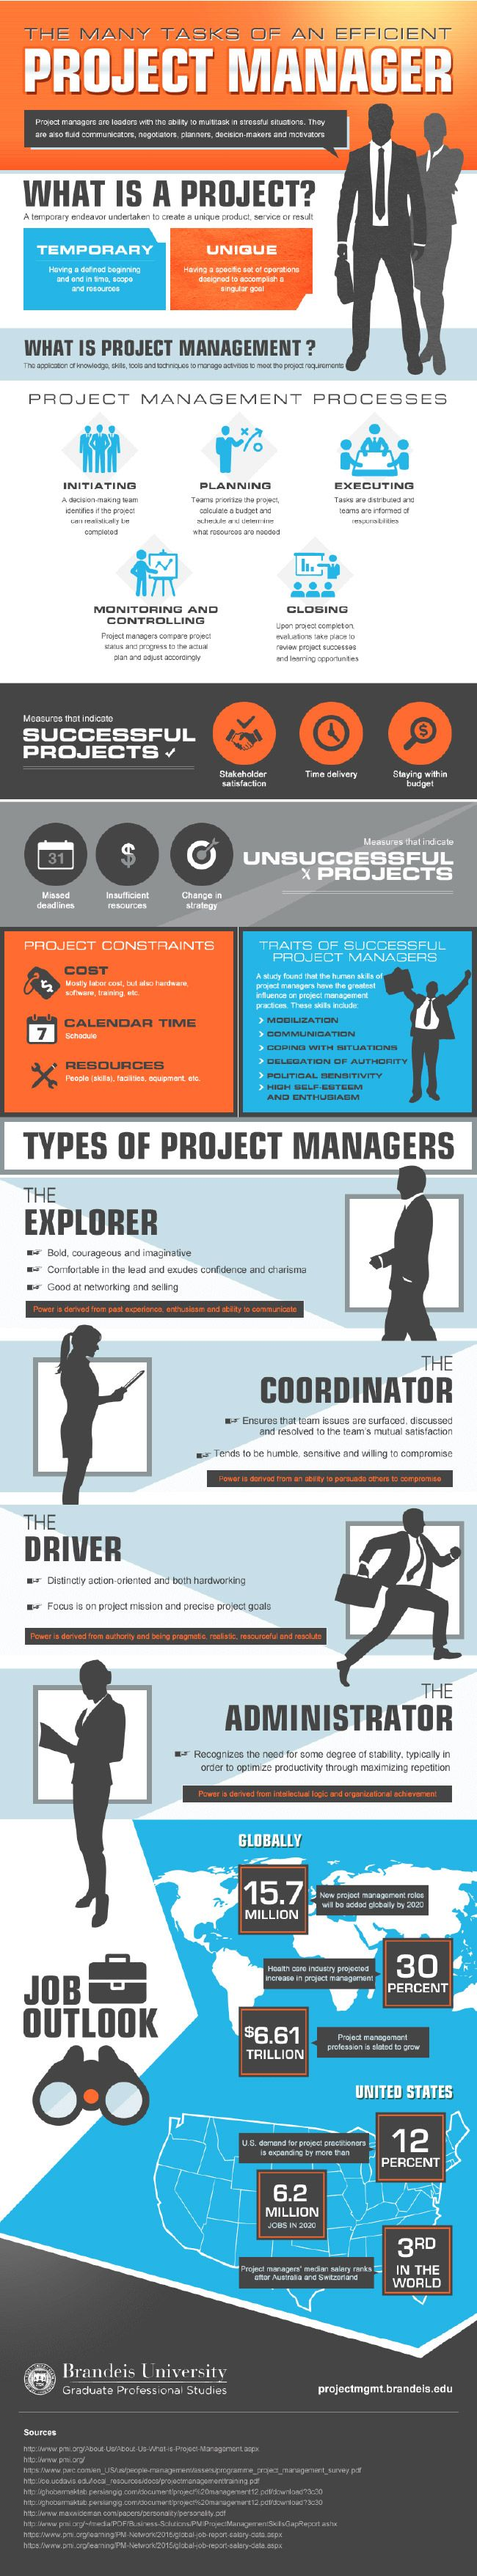 2304 best project management images on pinterest pmp exam what the heck does a project manager do anyway xflitez Gallery